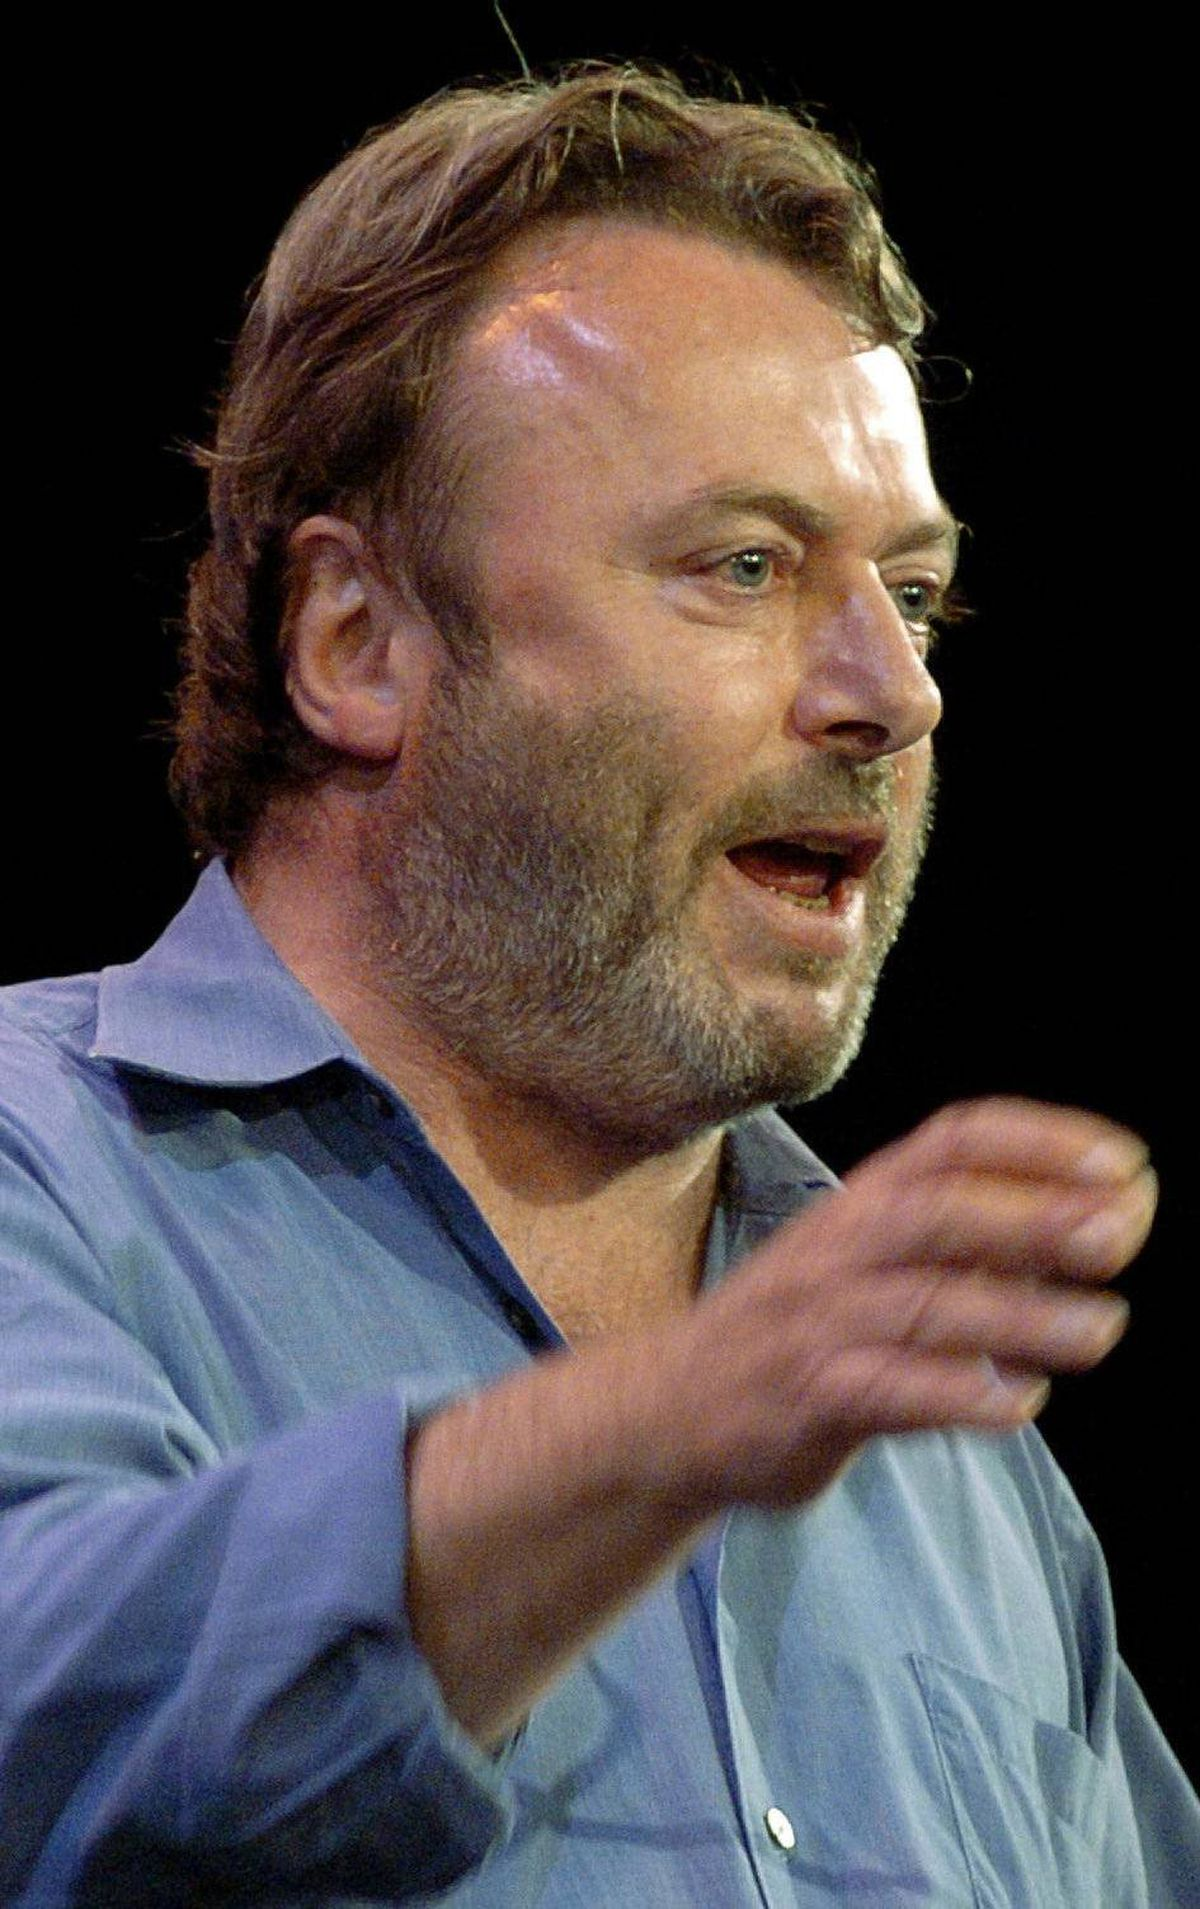 """**FILE**Essayist Christopher Hitchens speaks during a debate on Iraq and the foreign policies of the United States and Britain, on Sept. 14, 2005 in New York. The title of his new book, """"God Is Not Great,"""" is an intentionally inflammatory twist on """"Allah Akbar."""" Indeed, he lambasts Islam as """"not much more than a rather obvious and ill-arranged set of plagiarisms"""" from Judaism and Christianity. (AP Photo/Chad Rachman)"""